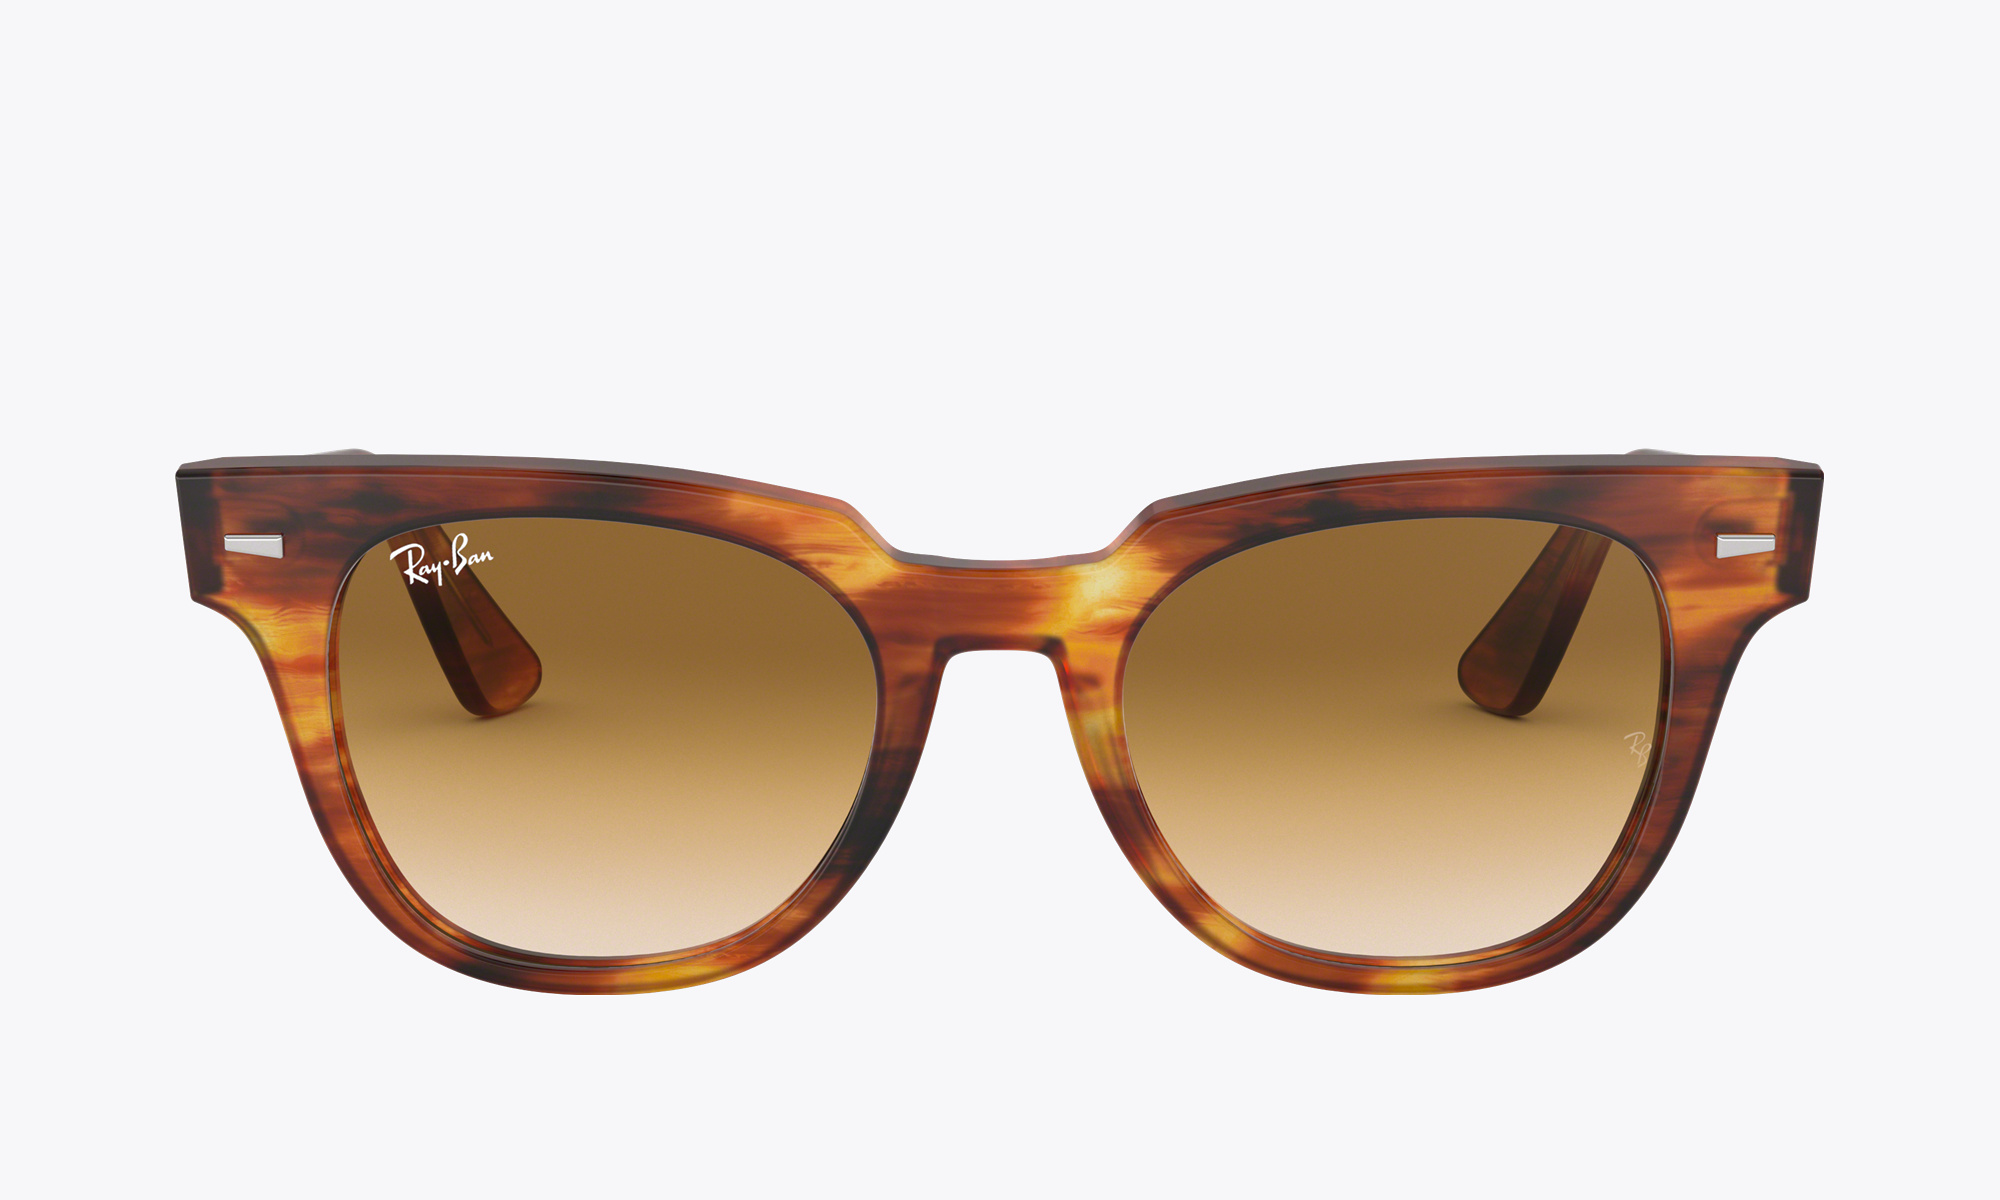 Image of Ray-Ban METEOR CLASSIC color Tortoise